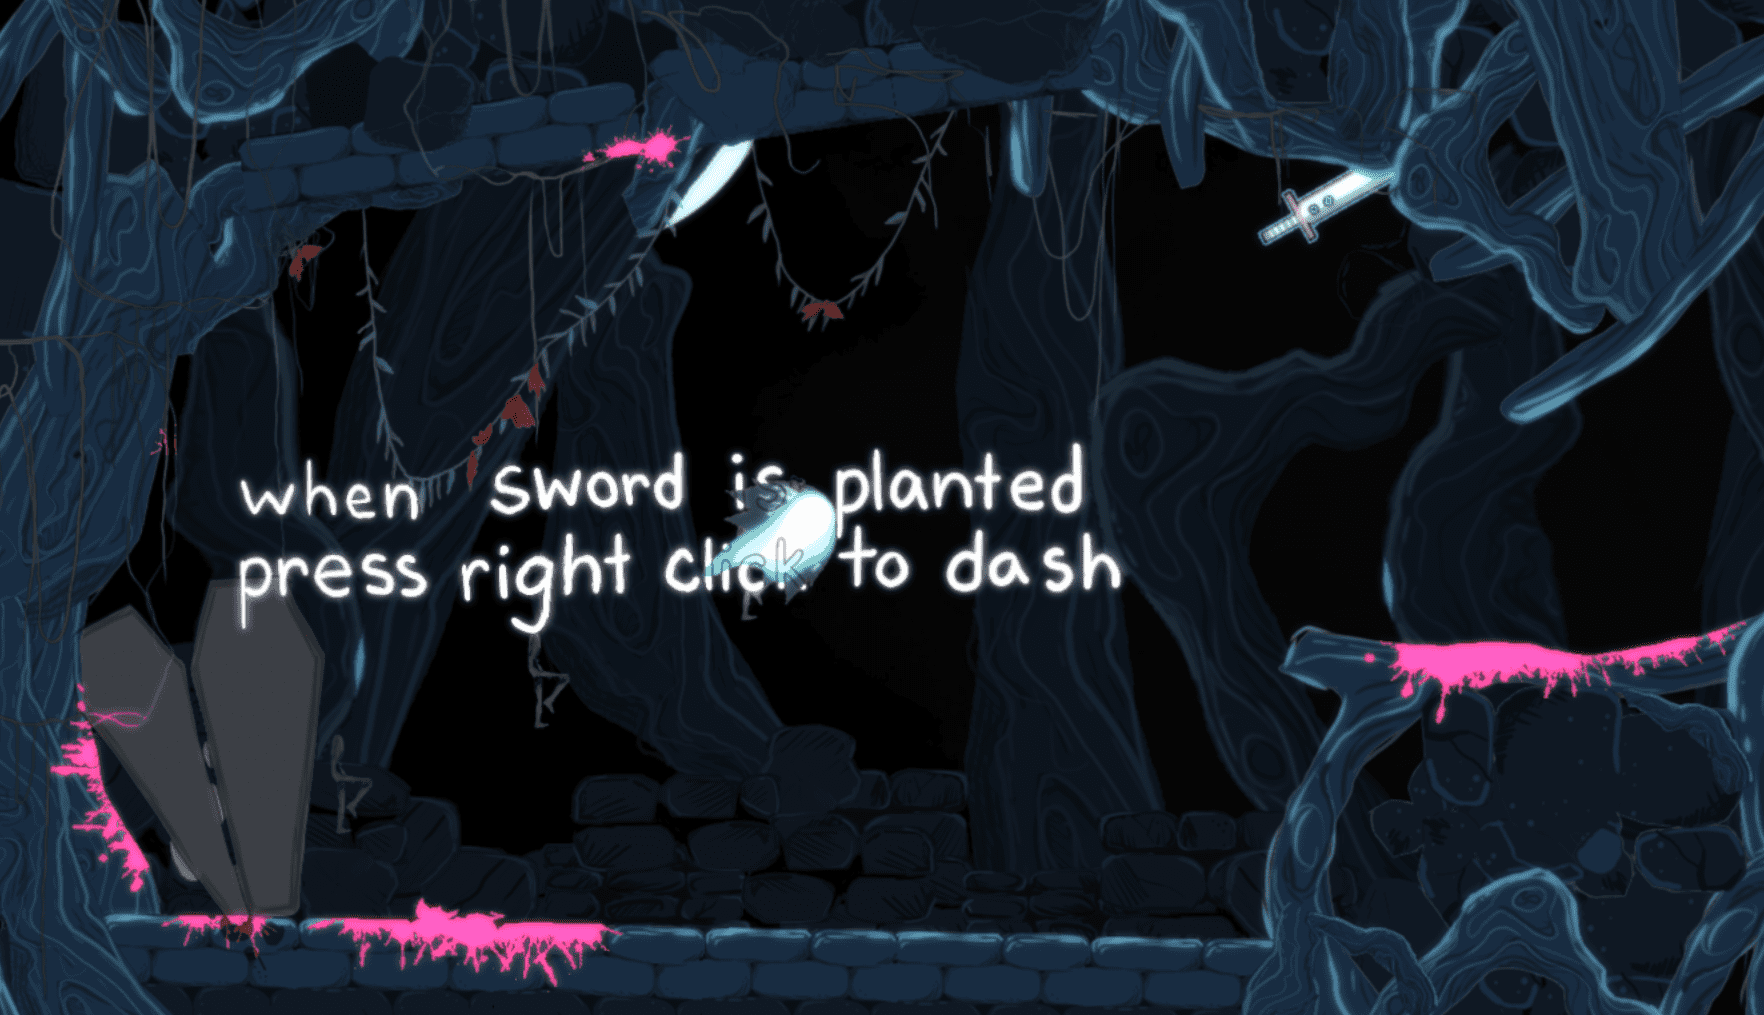 Throw and Dash, the simple mechanics open up to complex platforming and puzzles